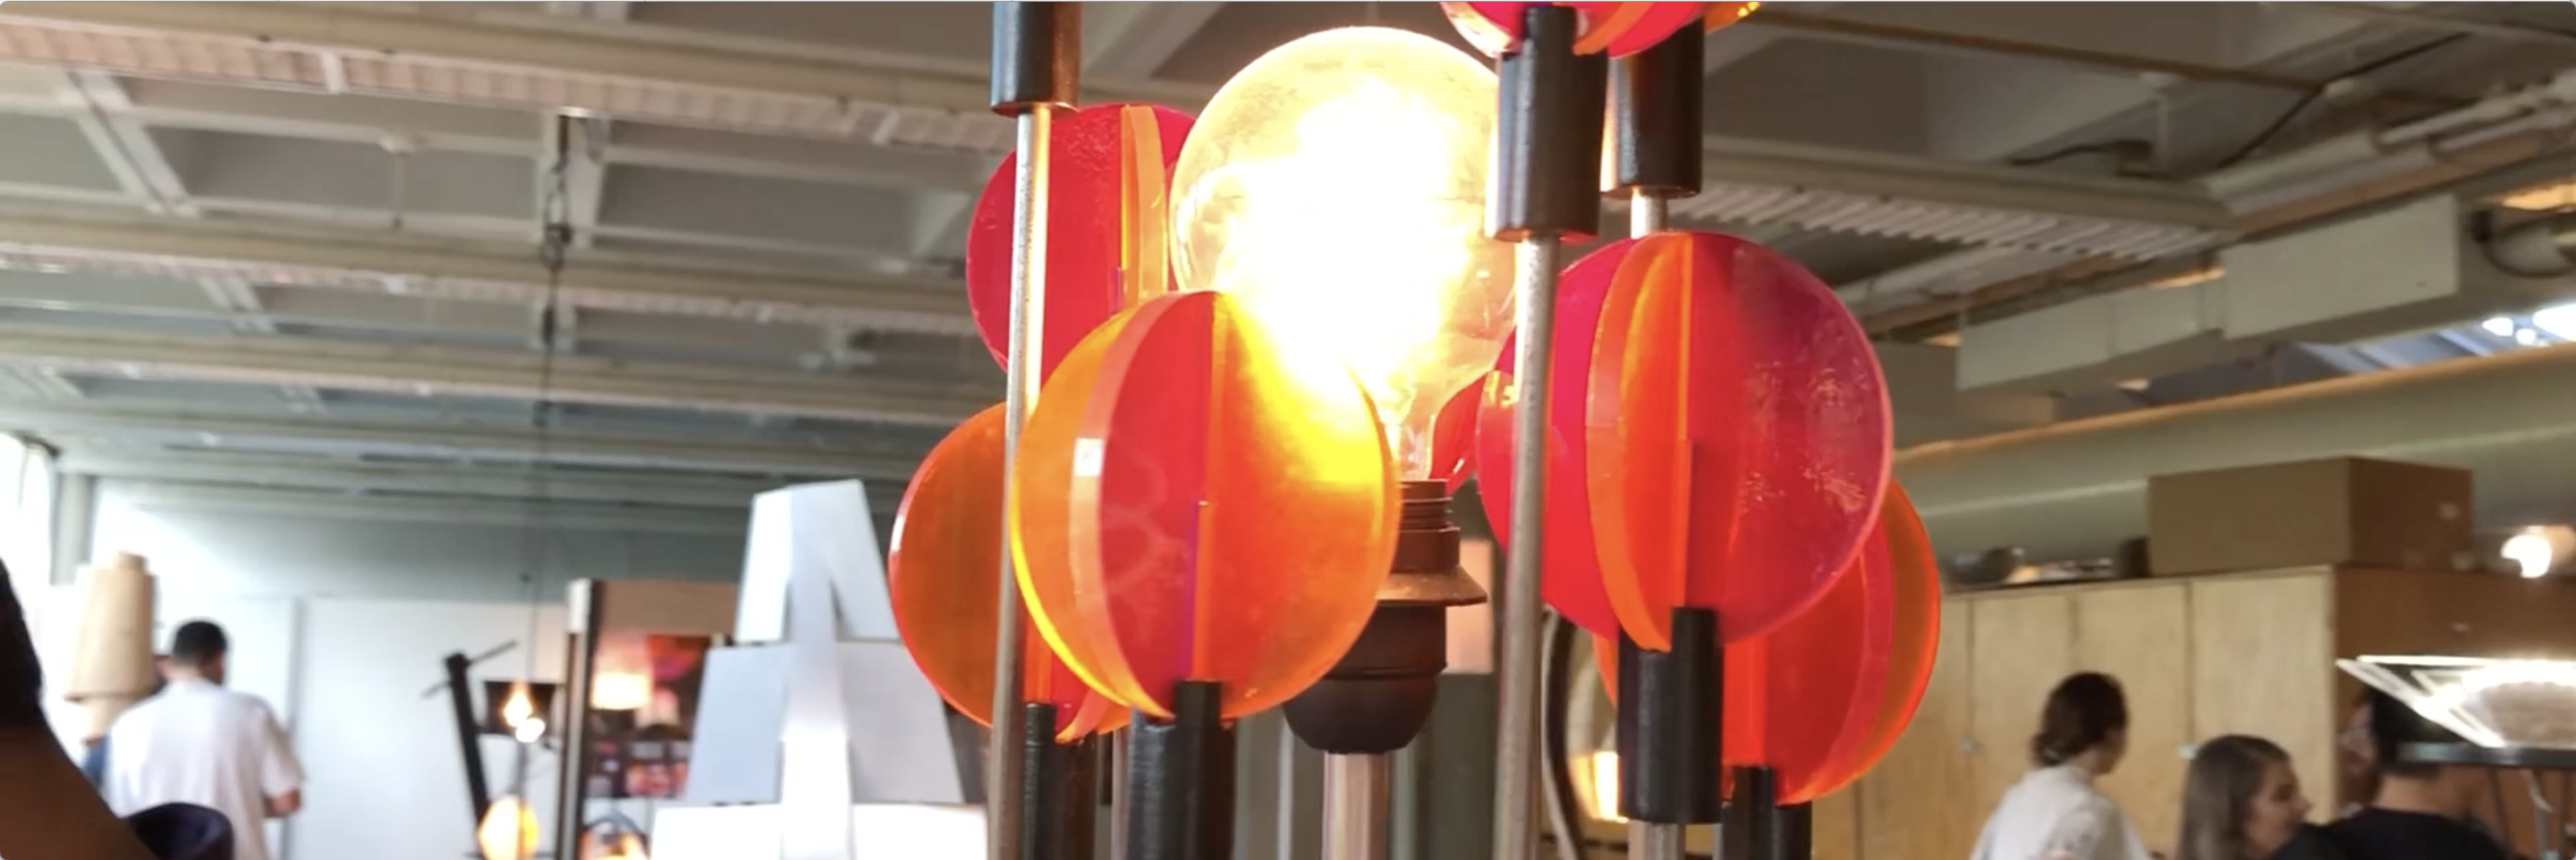 Student lamp design with red and orange accents.